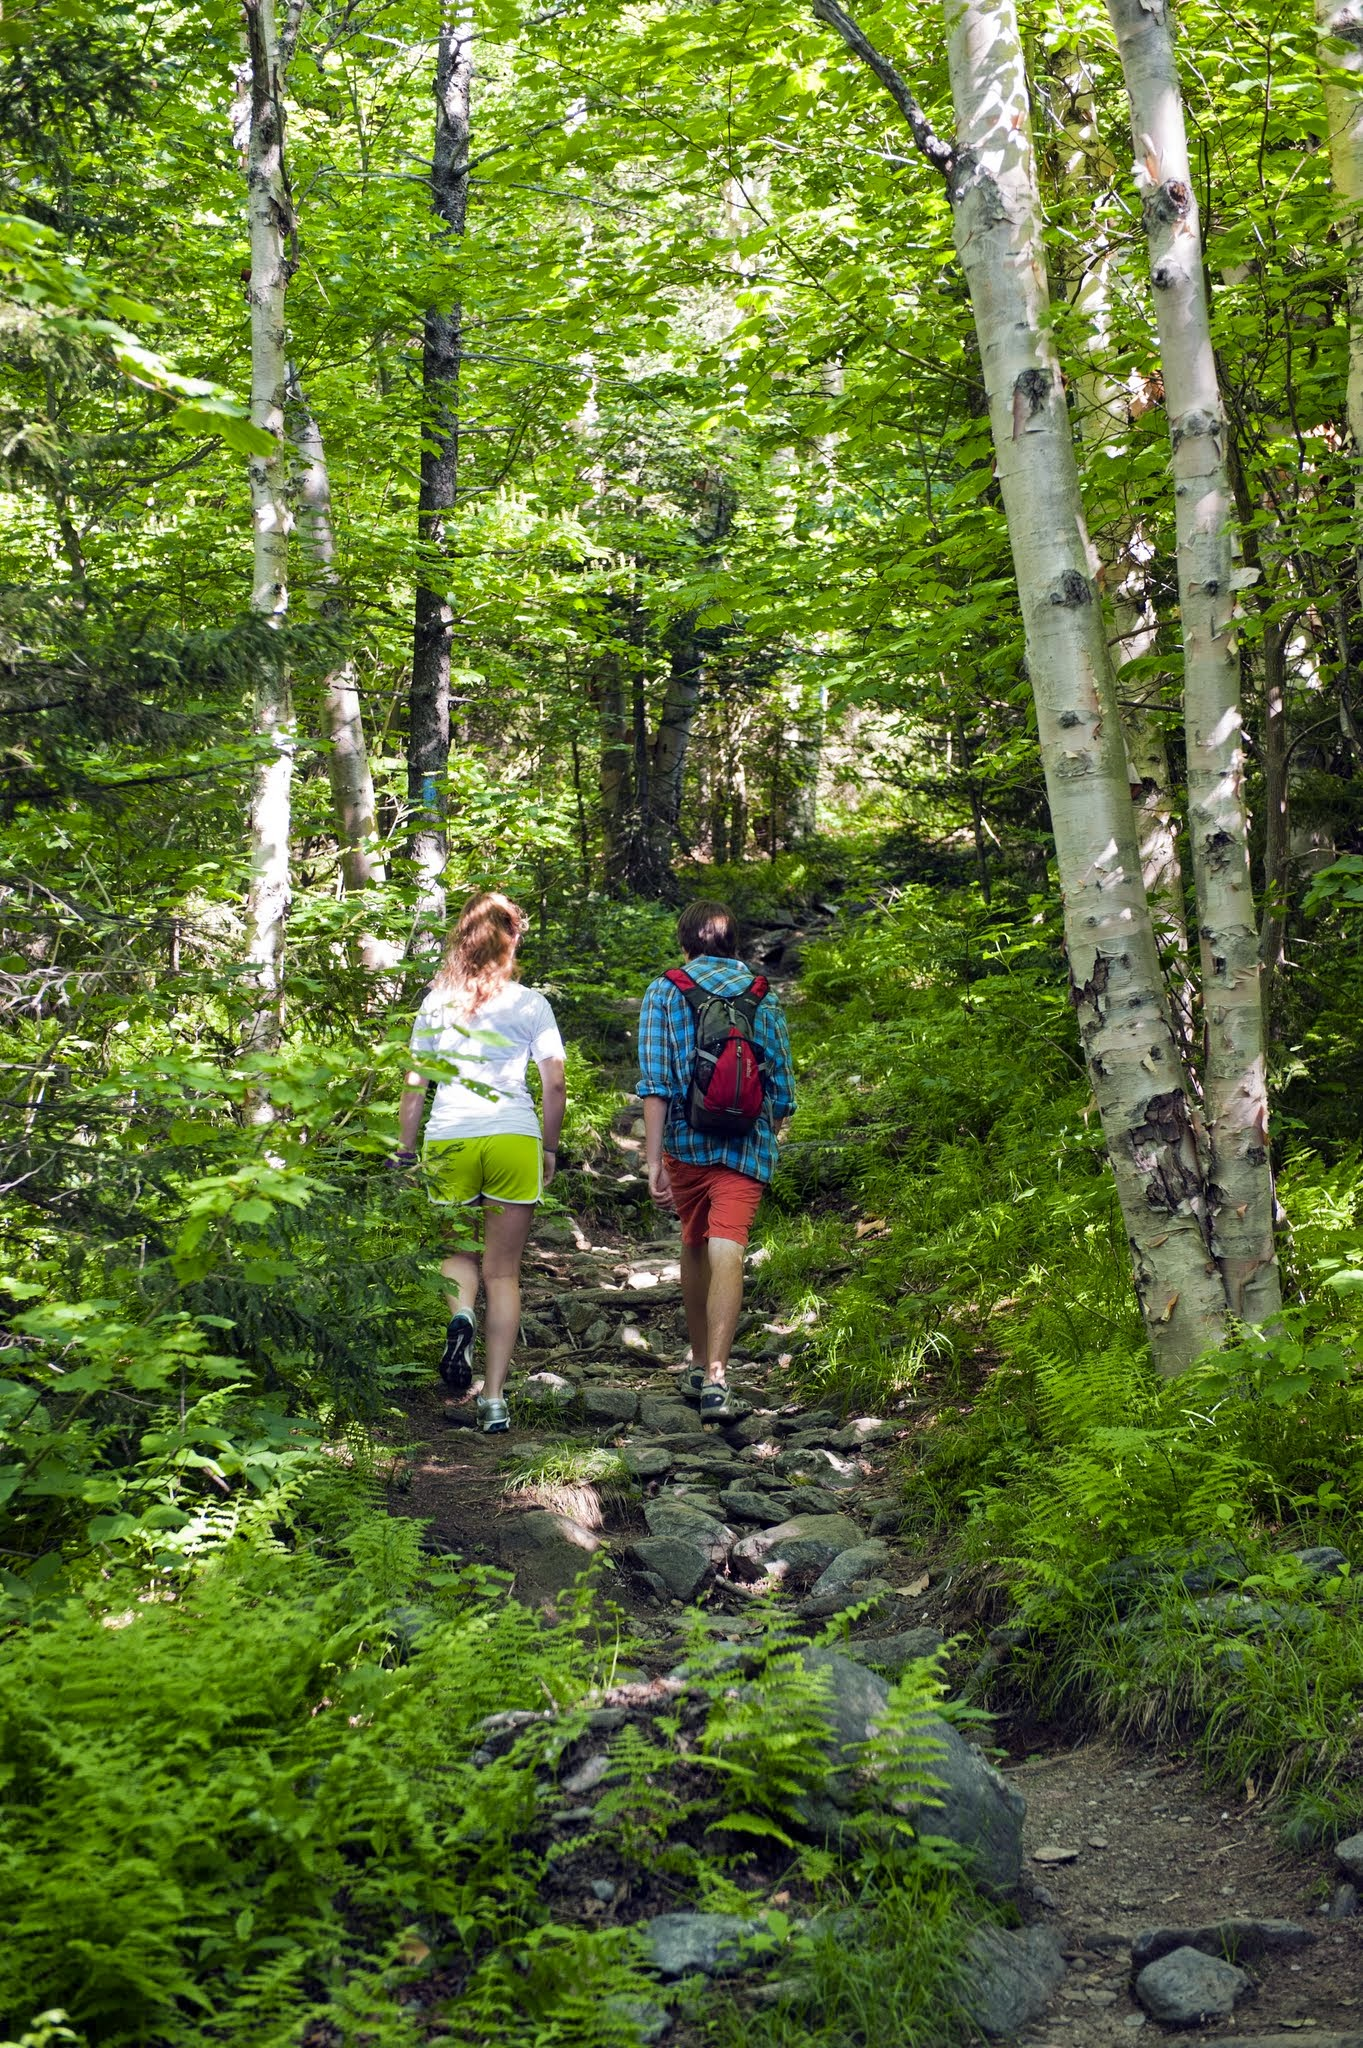 Photo: Couple hiking in Camel's Hump State Park by Dennis Curran